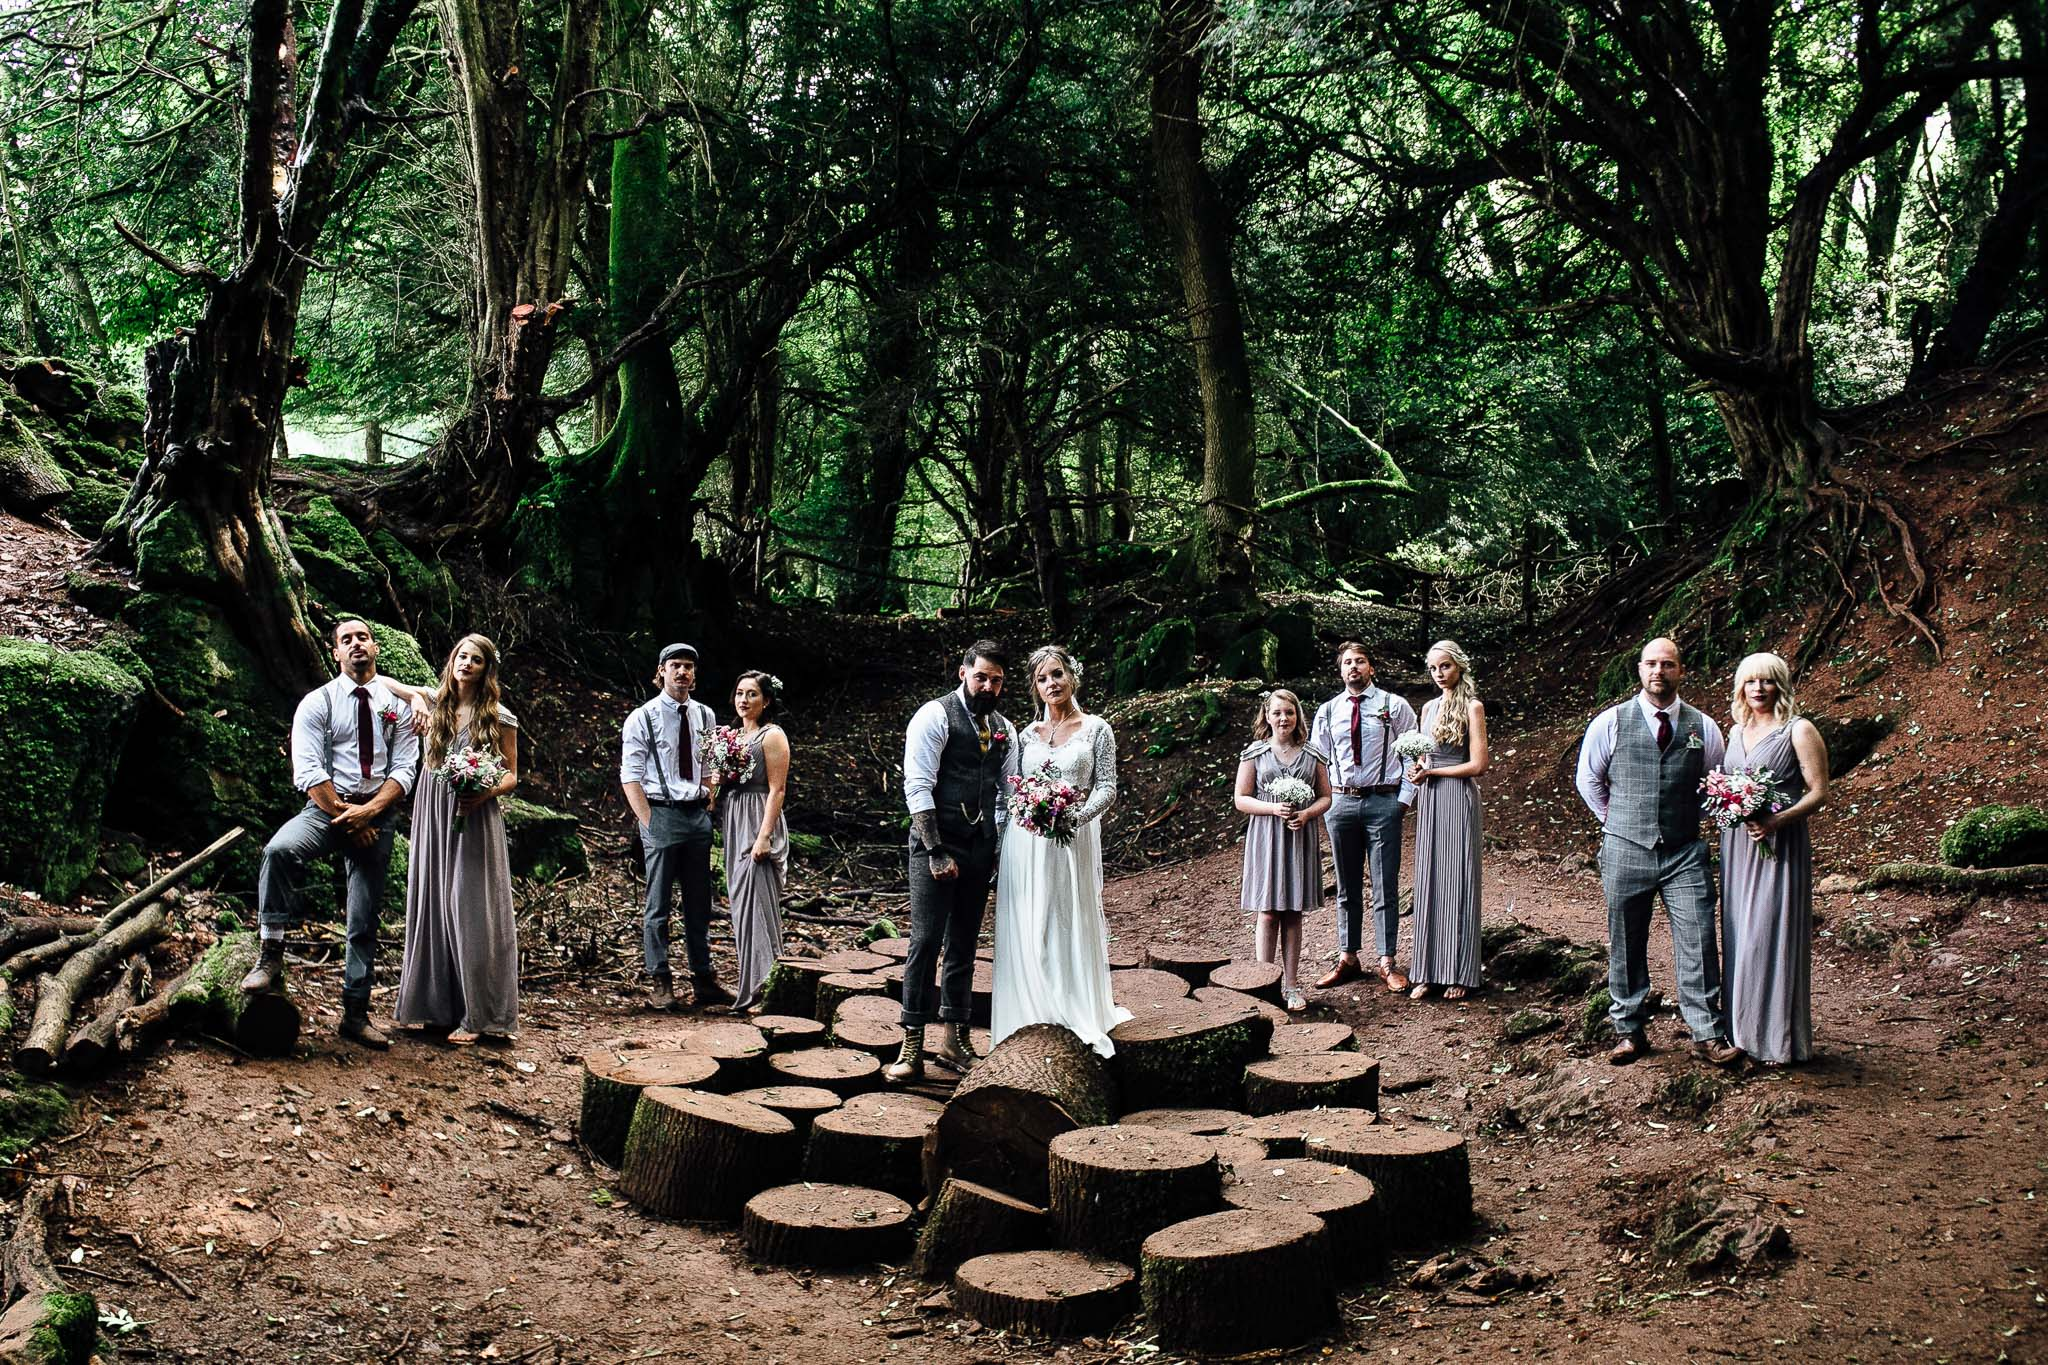 star wars theme woodland wedding in the uk